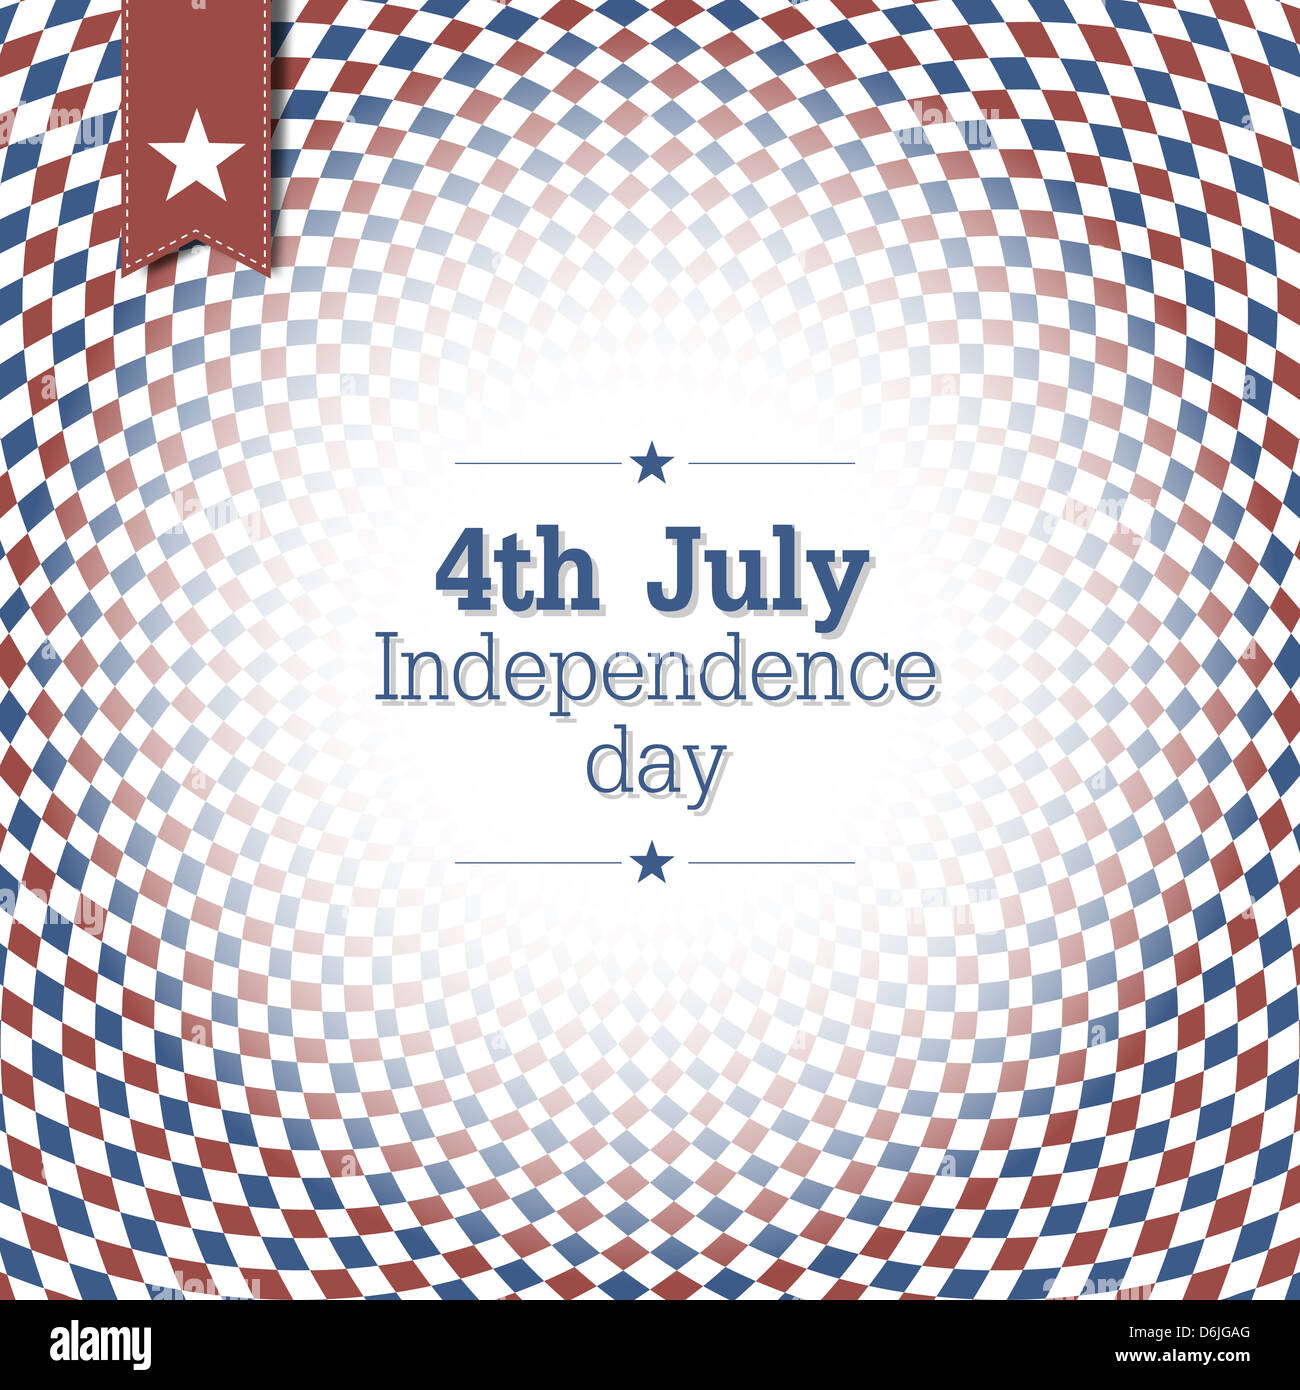 Poster design keywords - Independence Day 4th Of July Poster Design With Blue And Red Checkered Abstract Background